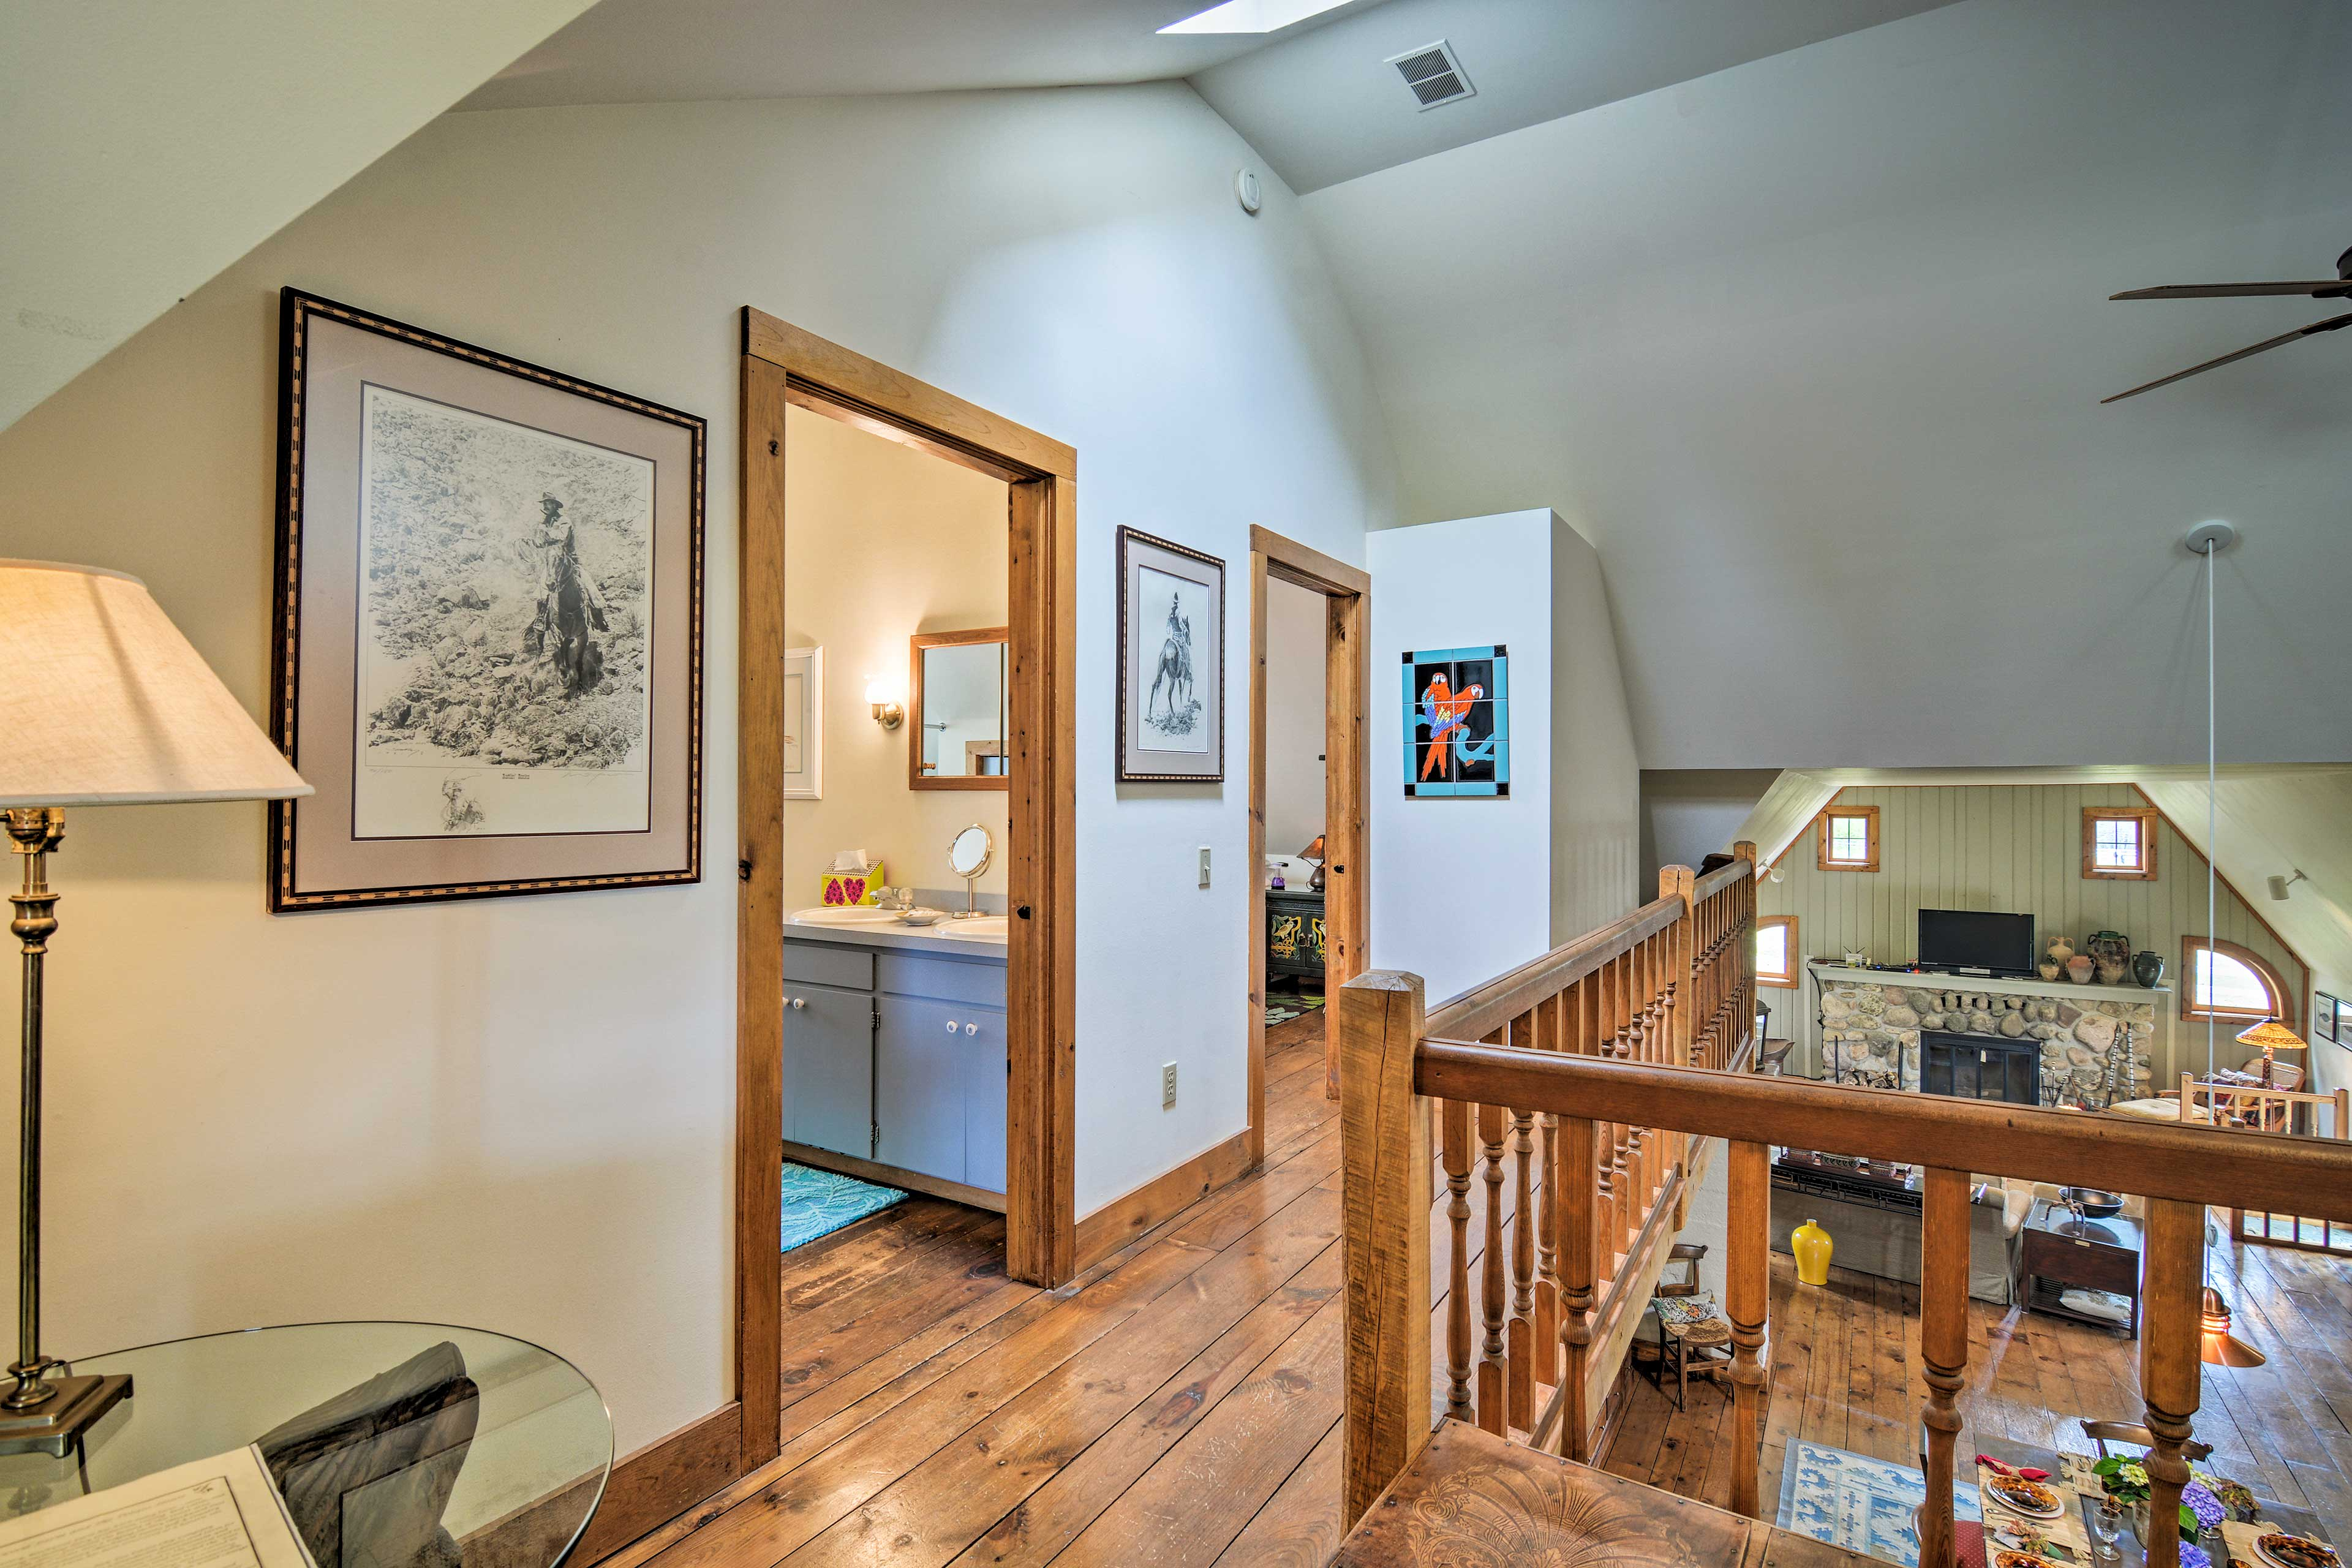 Wood flooring can be found throughout this home.